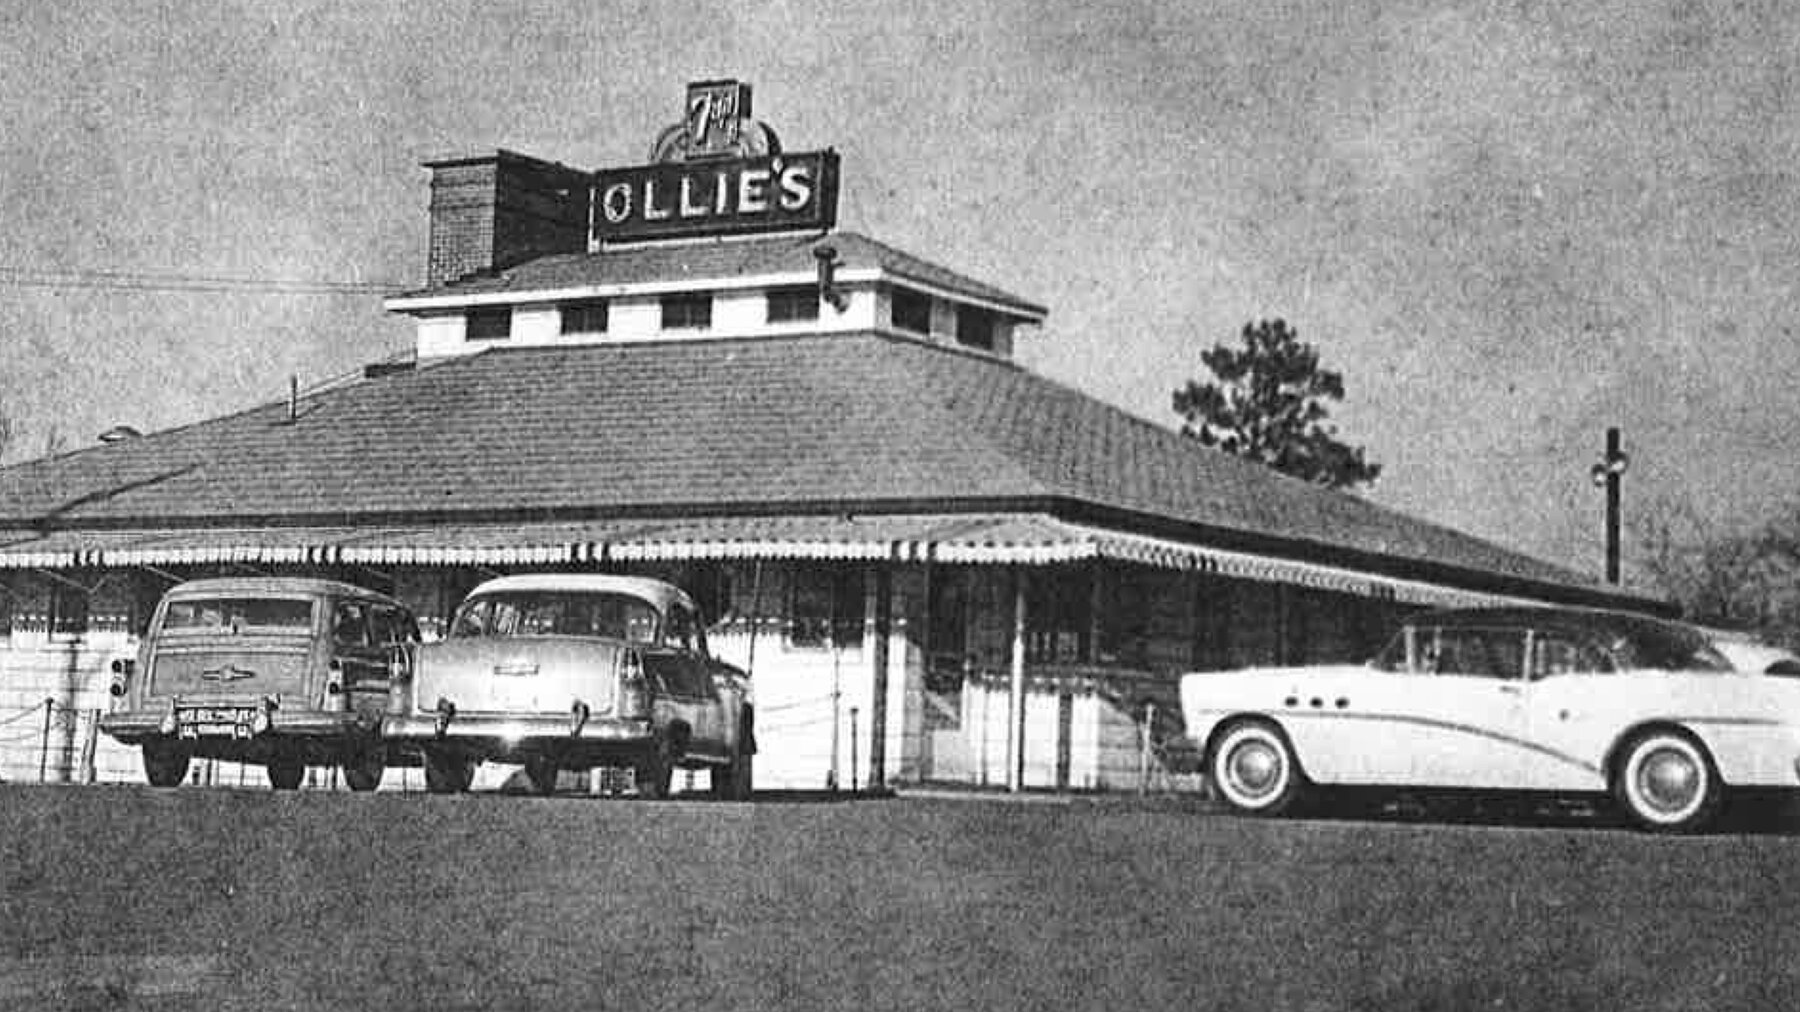 "Ollies Barbecue was a Birmingham, Ala., landmark where where white plumbers and electricians sat next to white doctors and bank presidents,"" but in 1964, blacks weren't allowed to eat there."